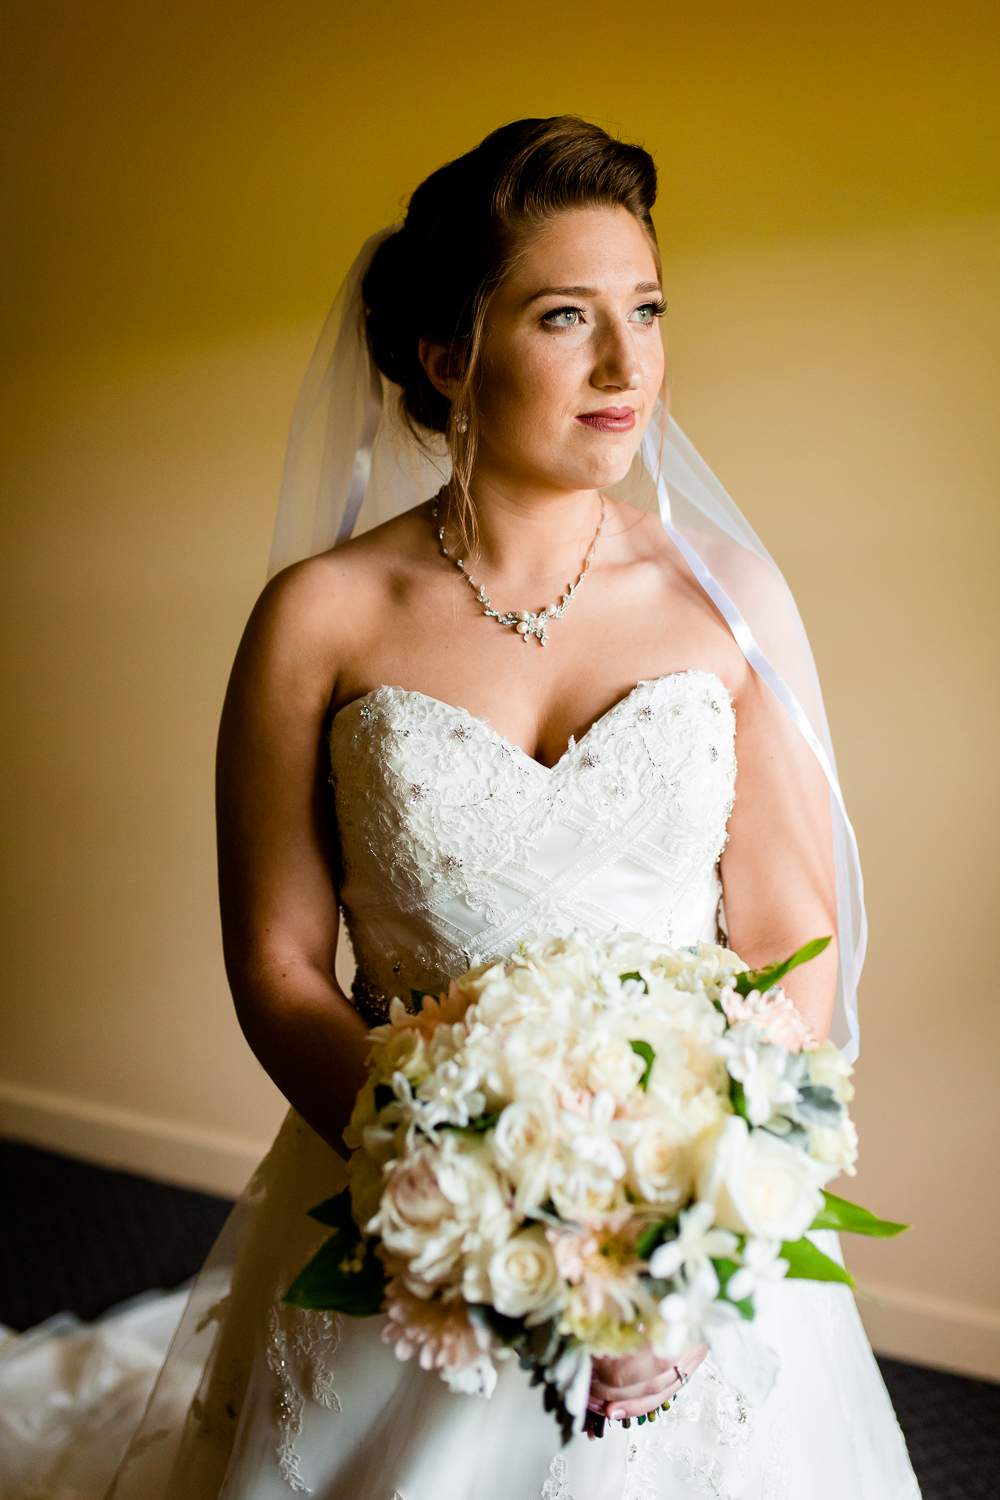 Portrait of bride holding her bouquet of flowers. She is wearing a veil and gazing out of the window.